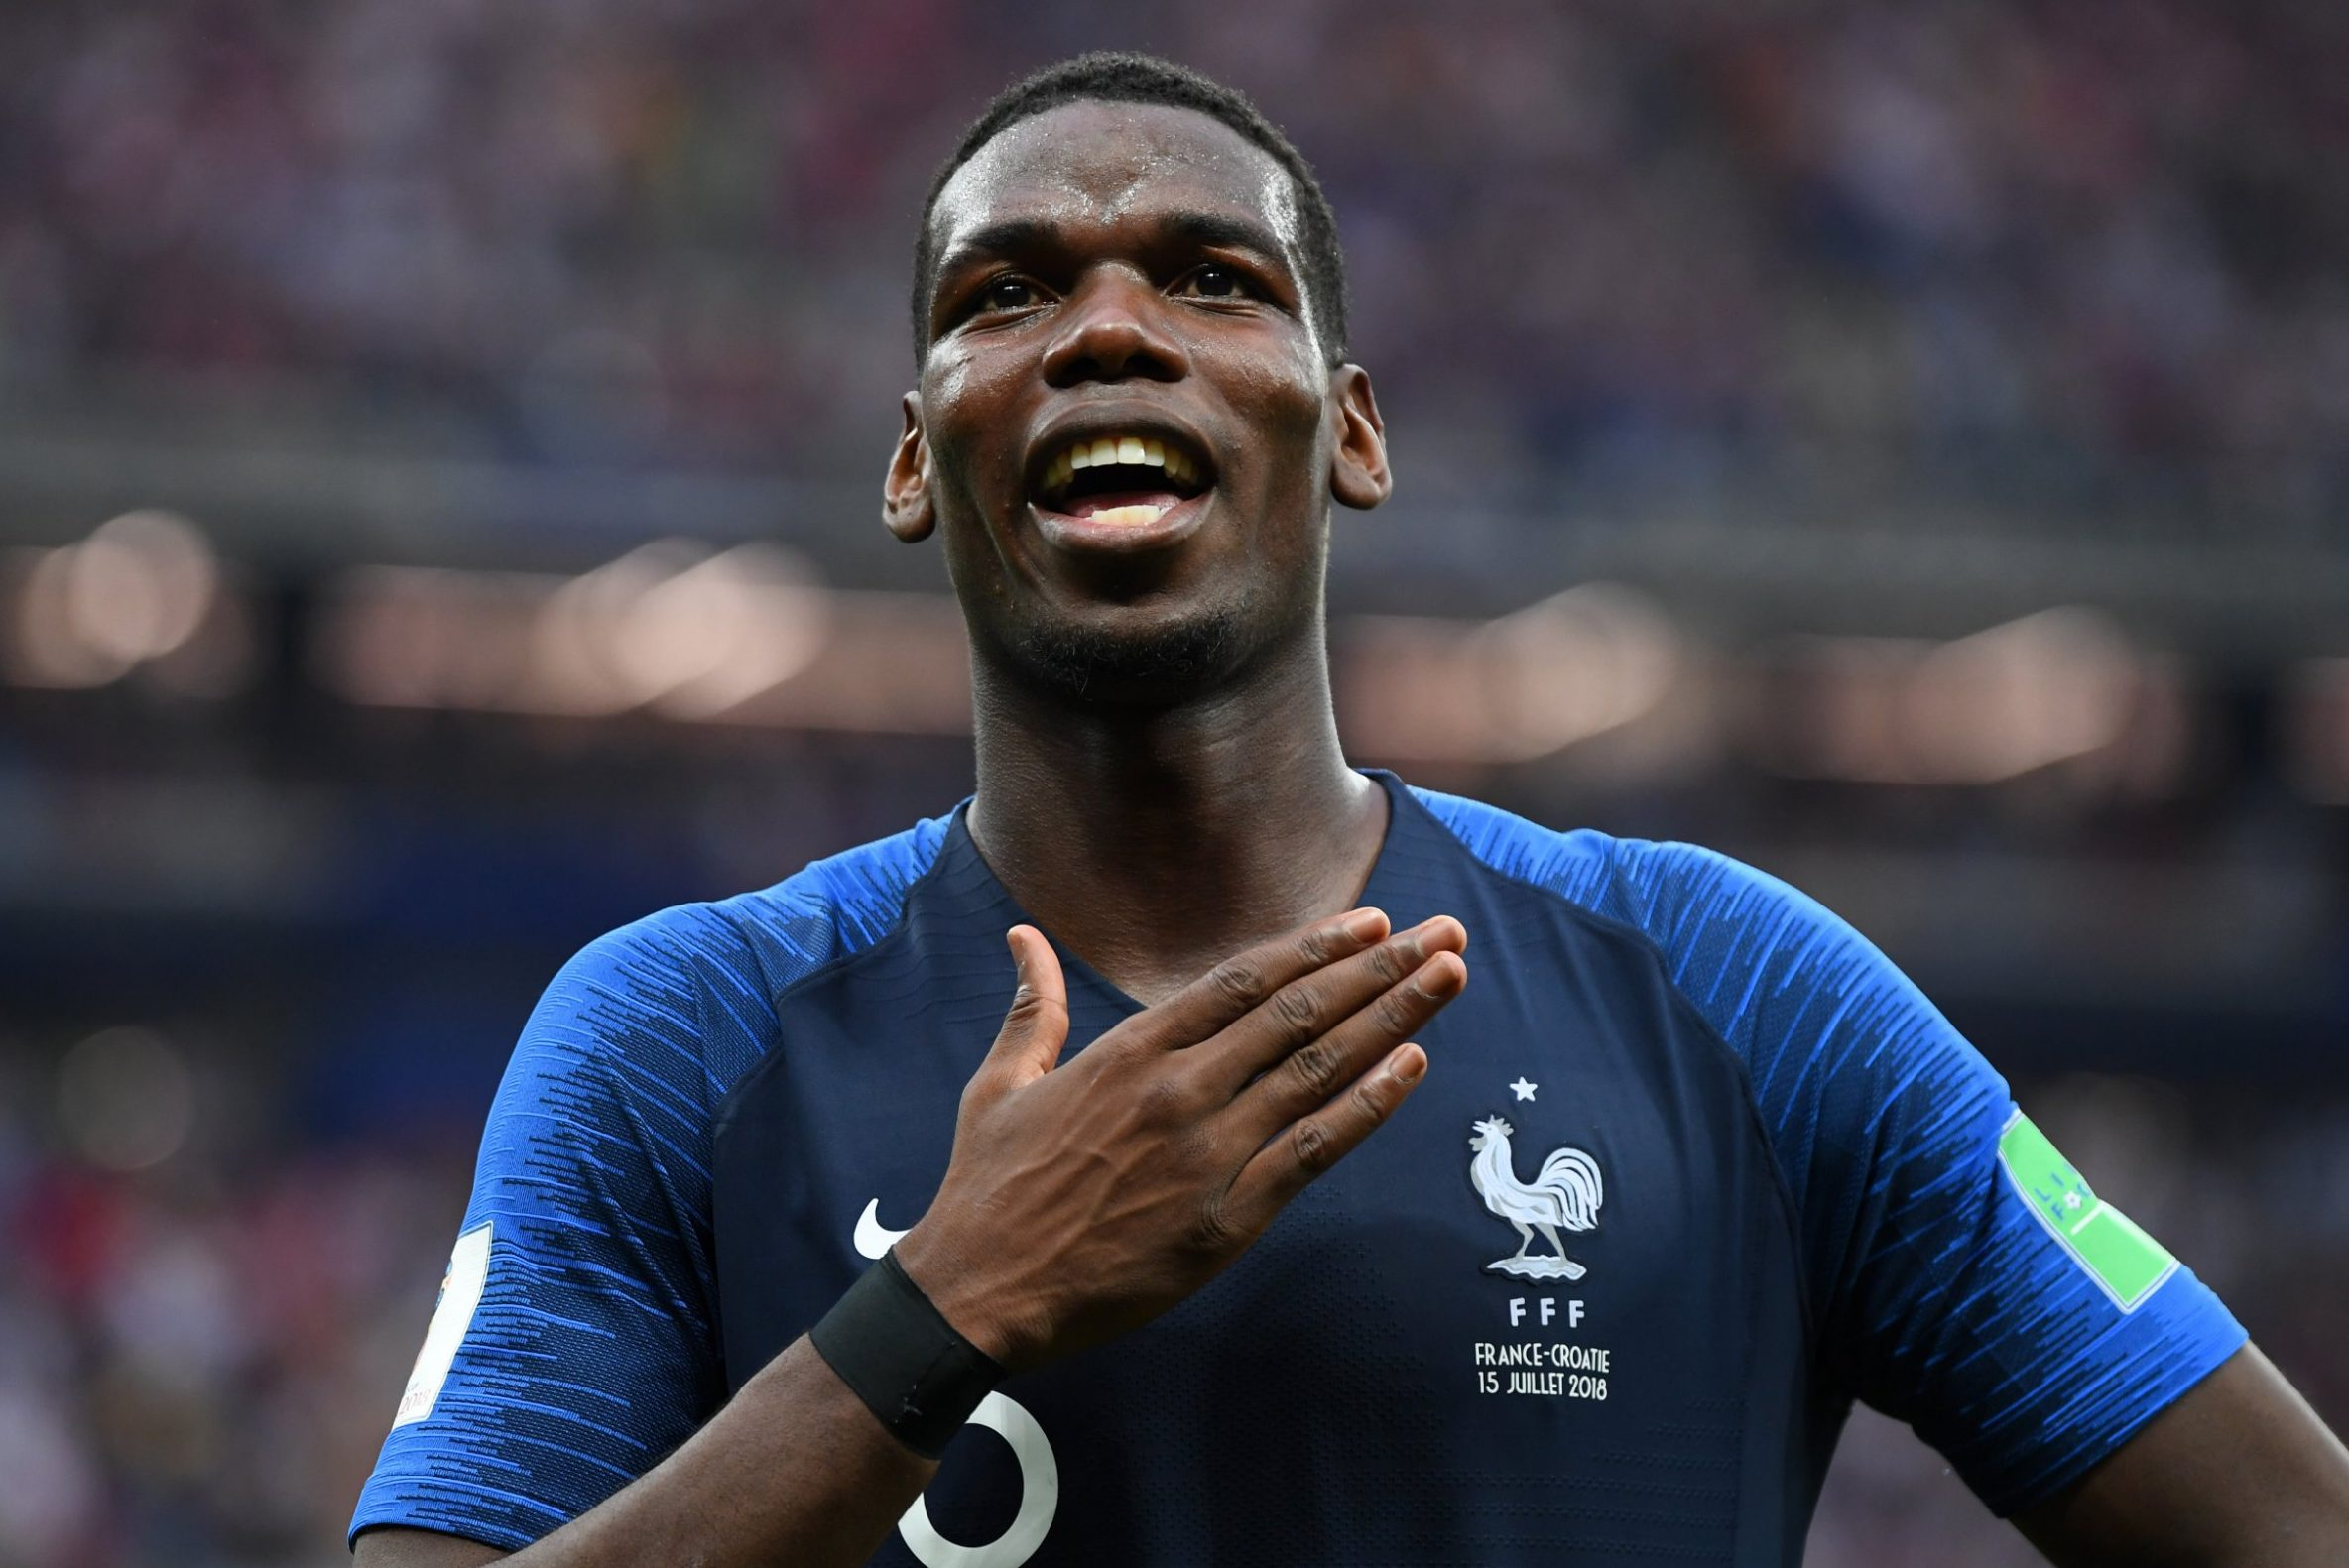 MOSCOW, RUSSIA - JULY 15: Paul Pogba of France celebrates following his sides victory in the 2018 FIFA World Cup Final between France and Croatia at Luzhniki Stadium on July 15, 2018 in Moscow, Russia. (Photo by Mike Hewitt - FIFA/FIFA via Getty Images)